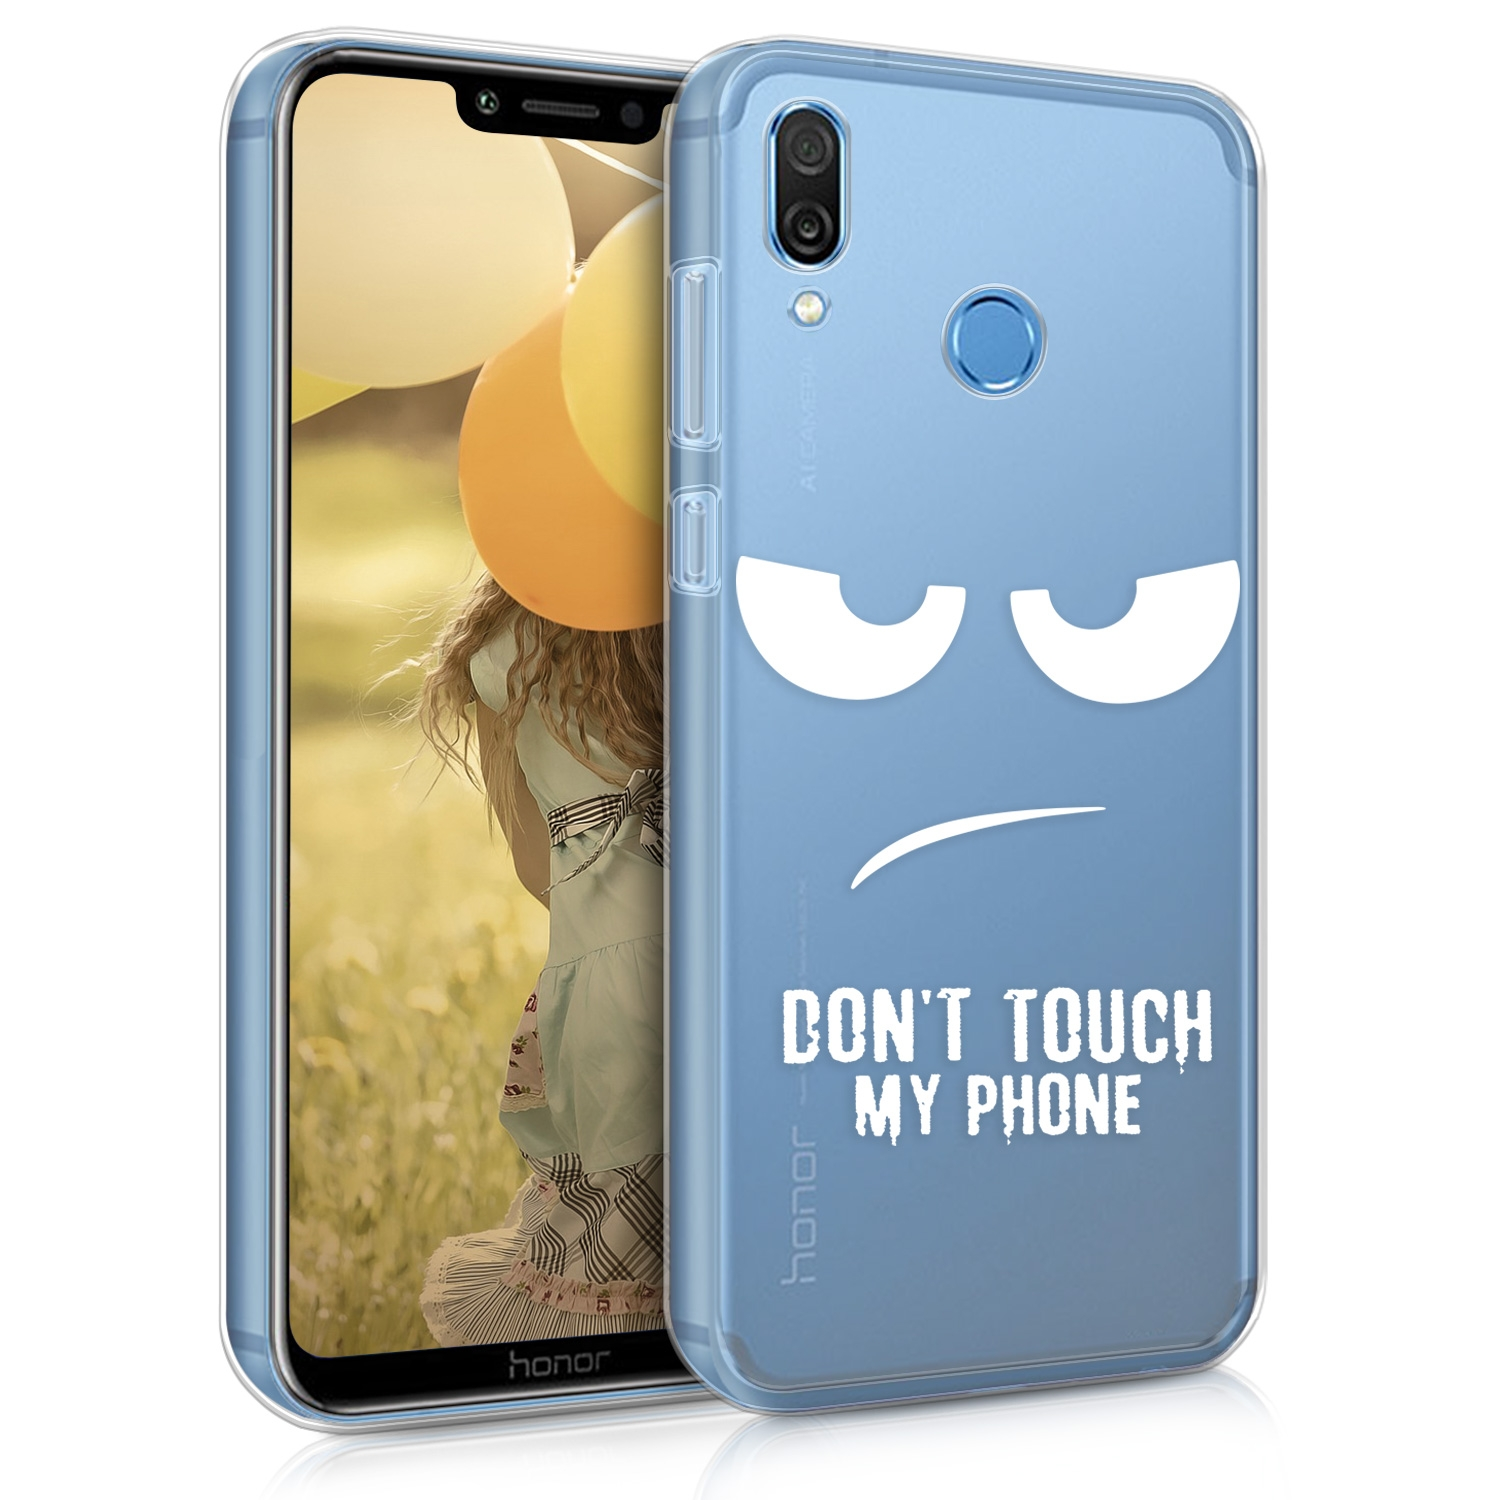 KW Θήκη Σιλικόνης Honor Play - Don't Touch My Phone (46099.01)